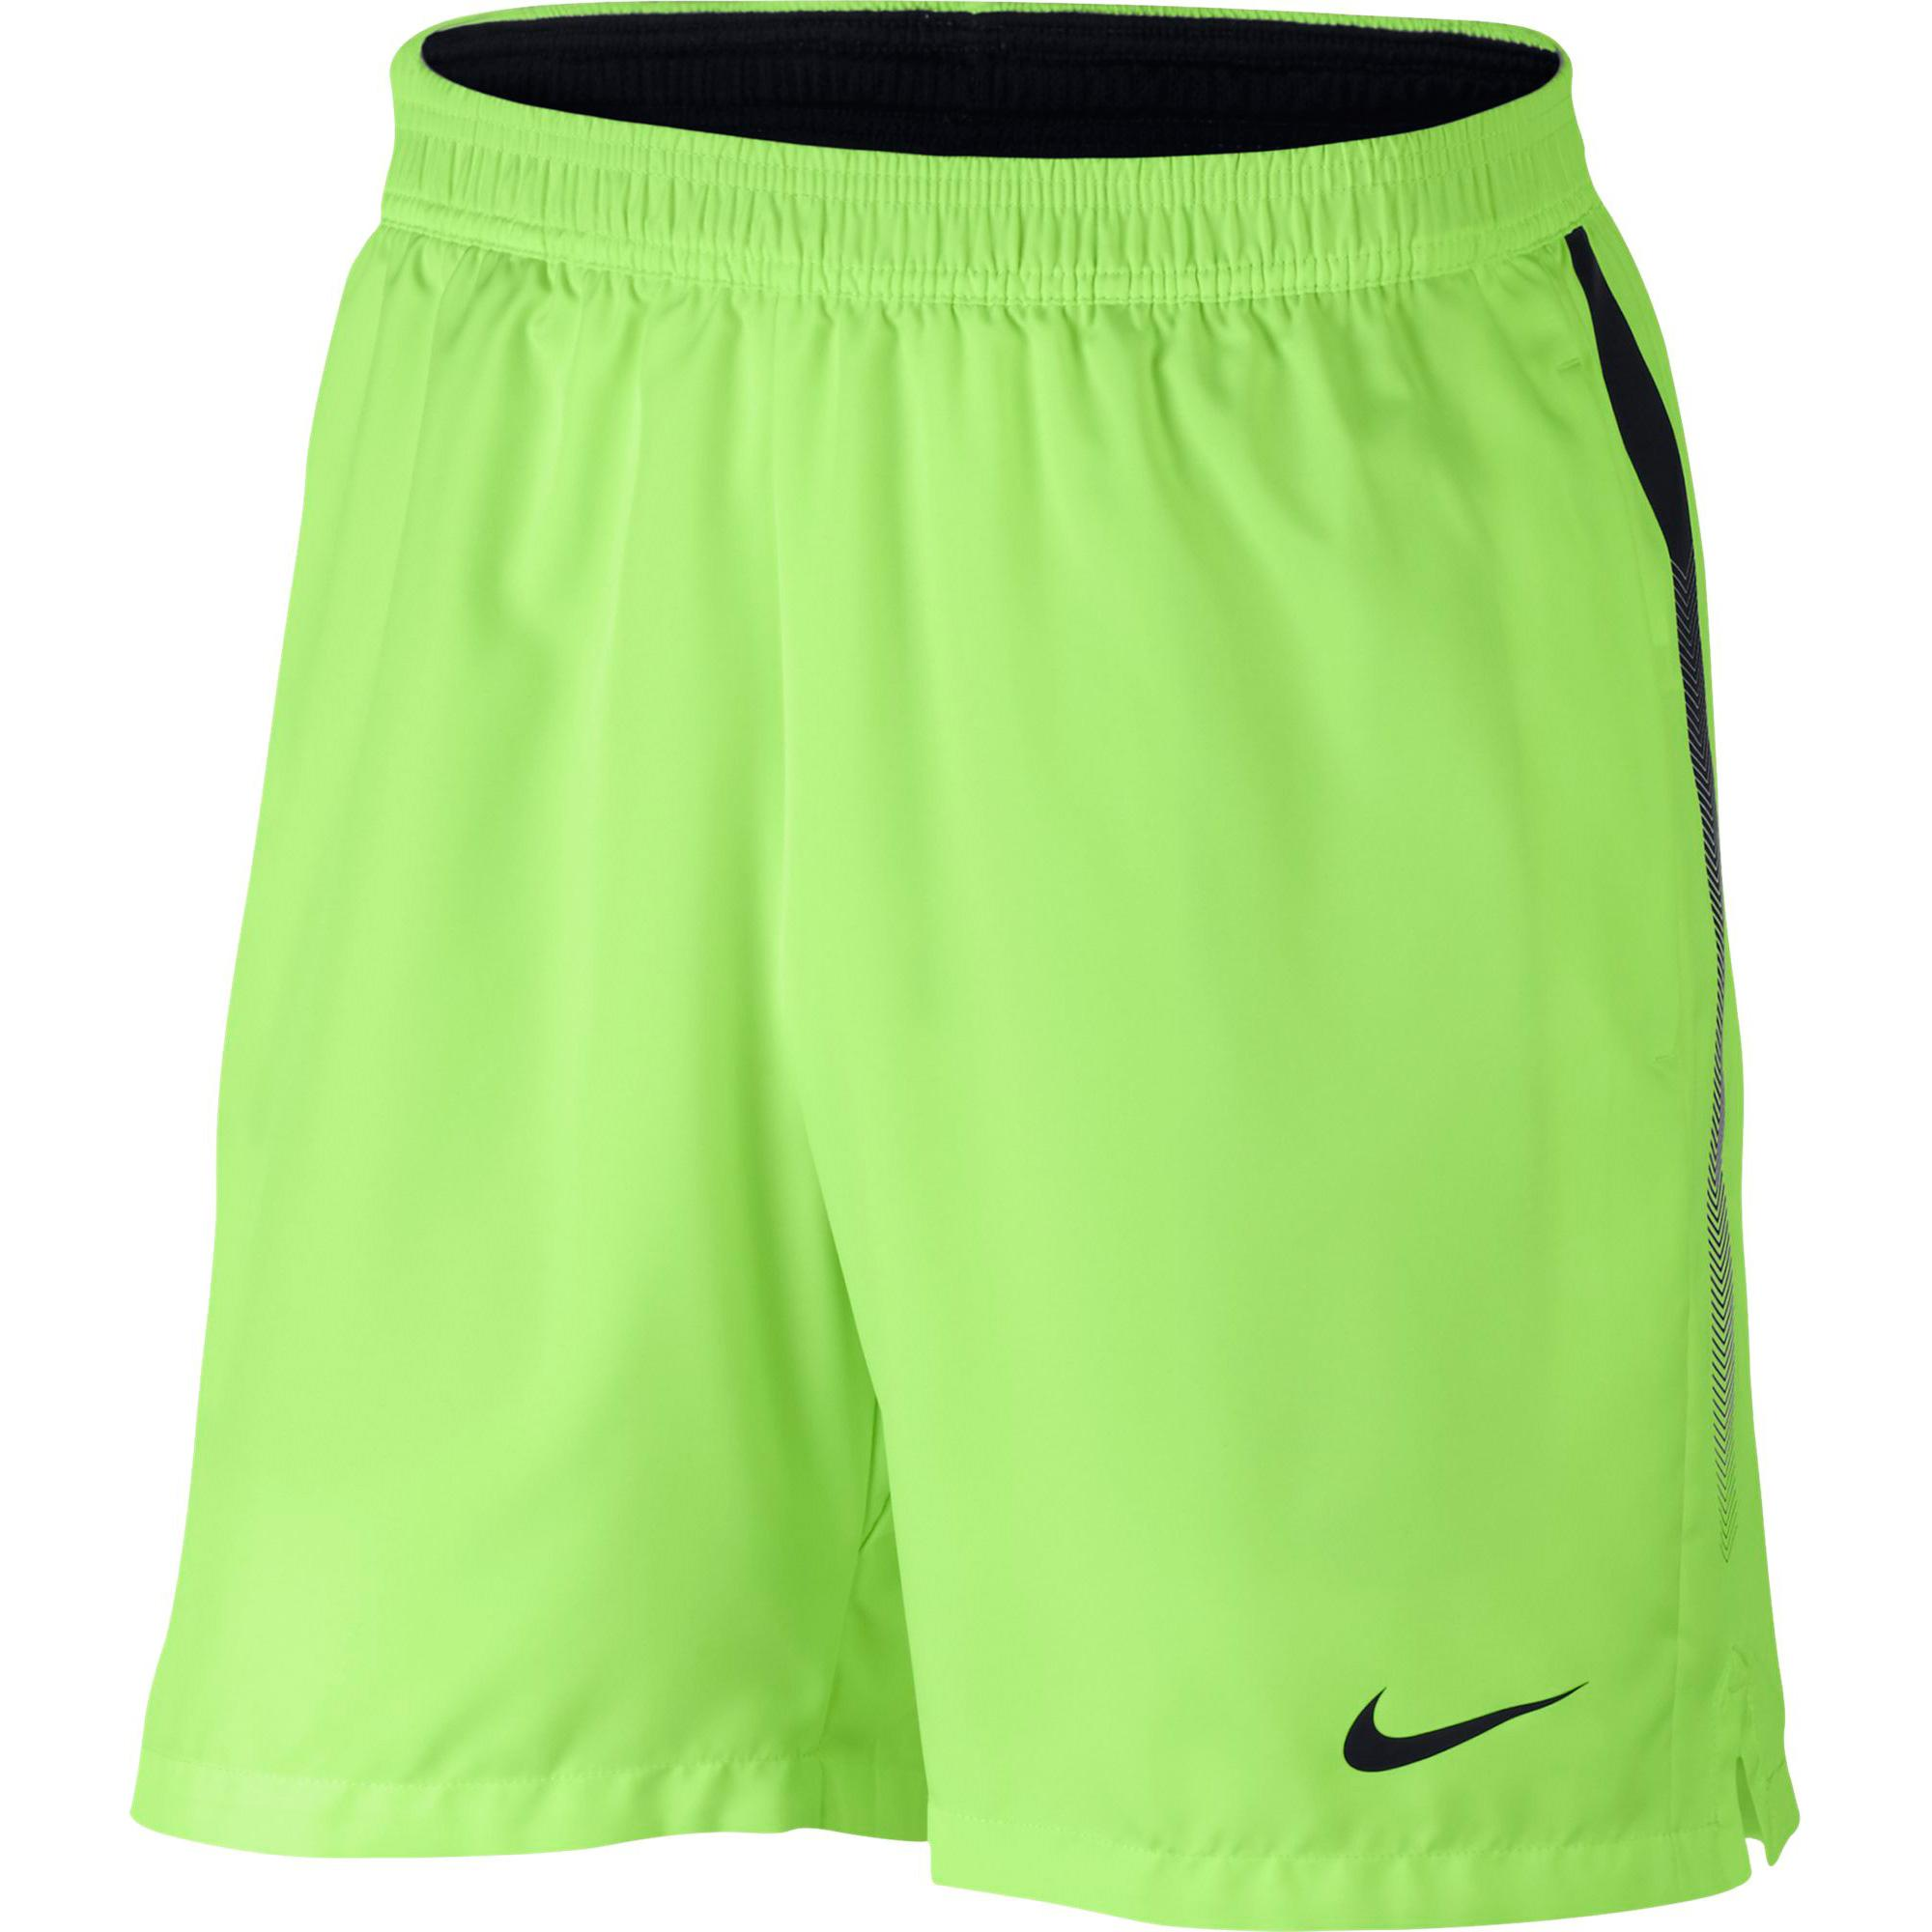 Nike mens dry 7 inch tennis shorts ghost green black for Mens dress shirts outlet